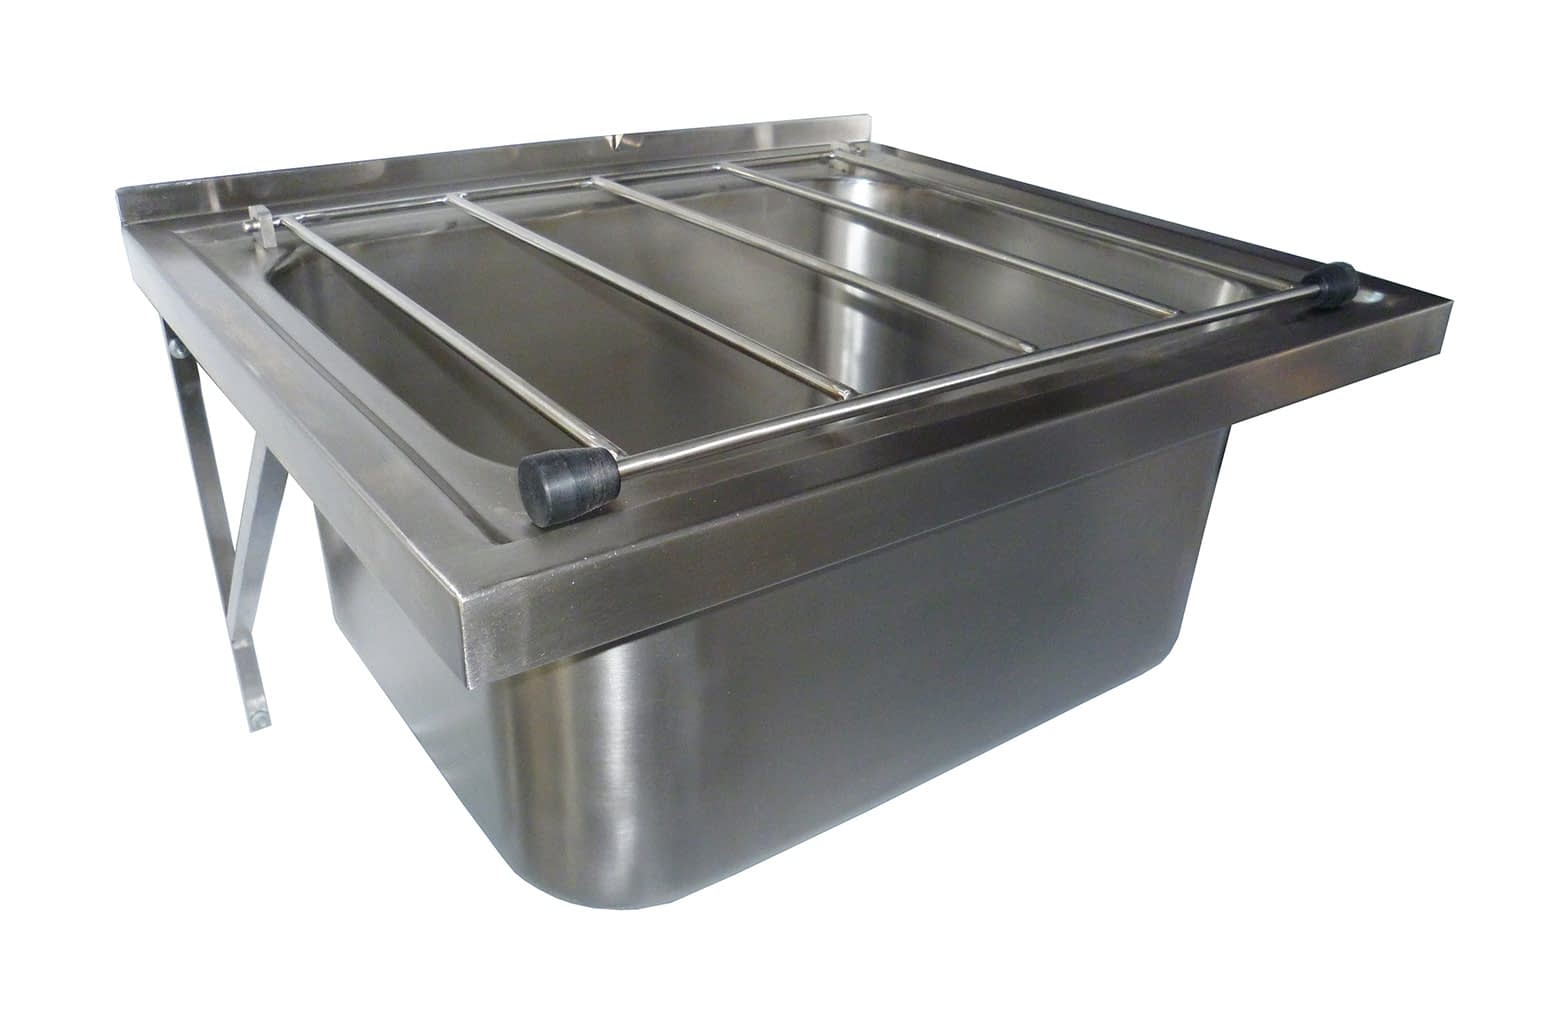 Stainless Steel Commercial Kitchen Wall Mounted Mop Sink